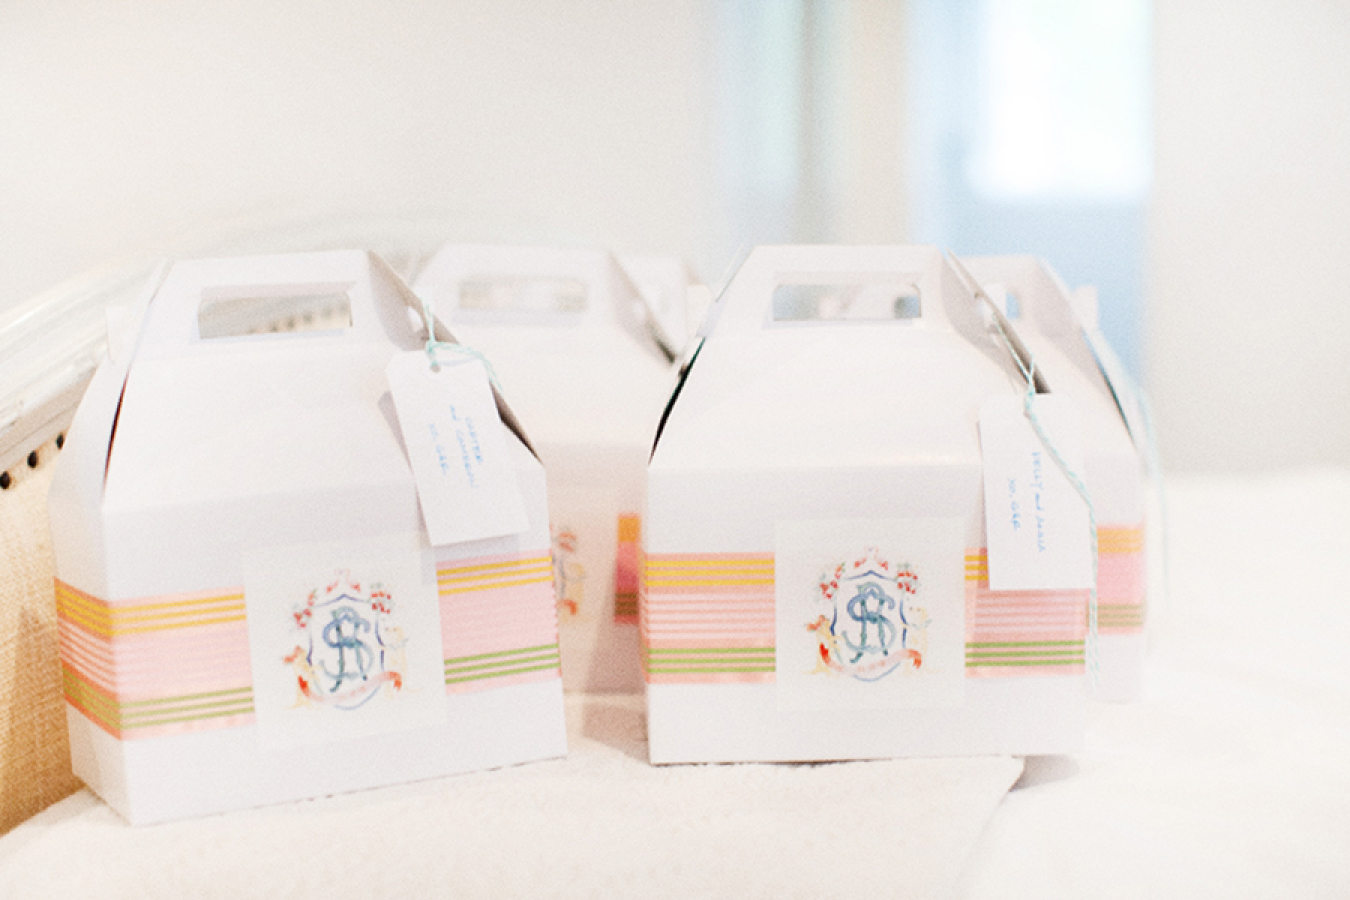 custom-rehearsal-dinner-gift-boxes http://itgirlweddings.com/white-party-rehearsal-dinner/